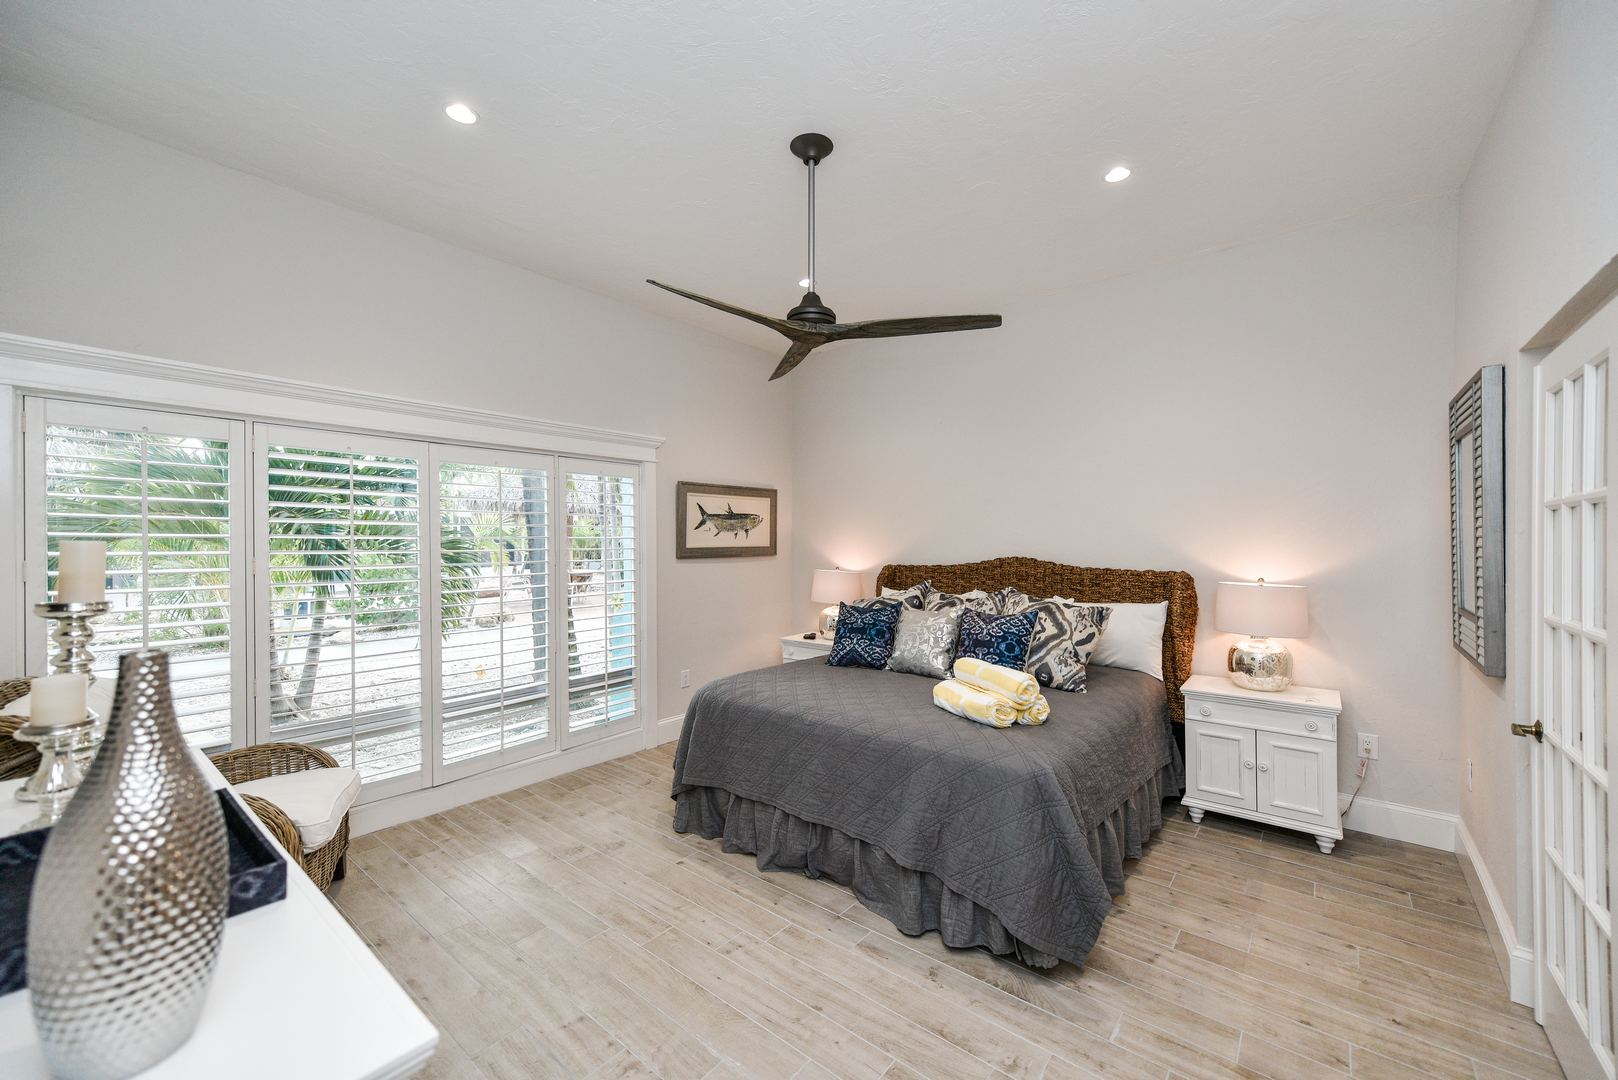 Huge Master Bedroom with Views of Tropical Landscaping